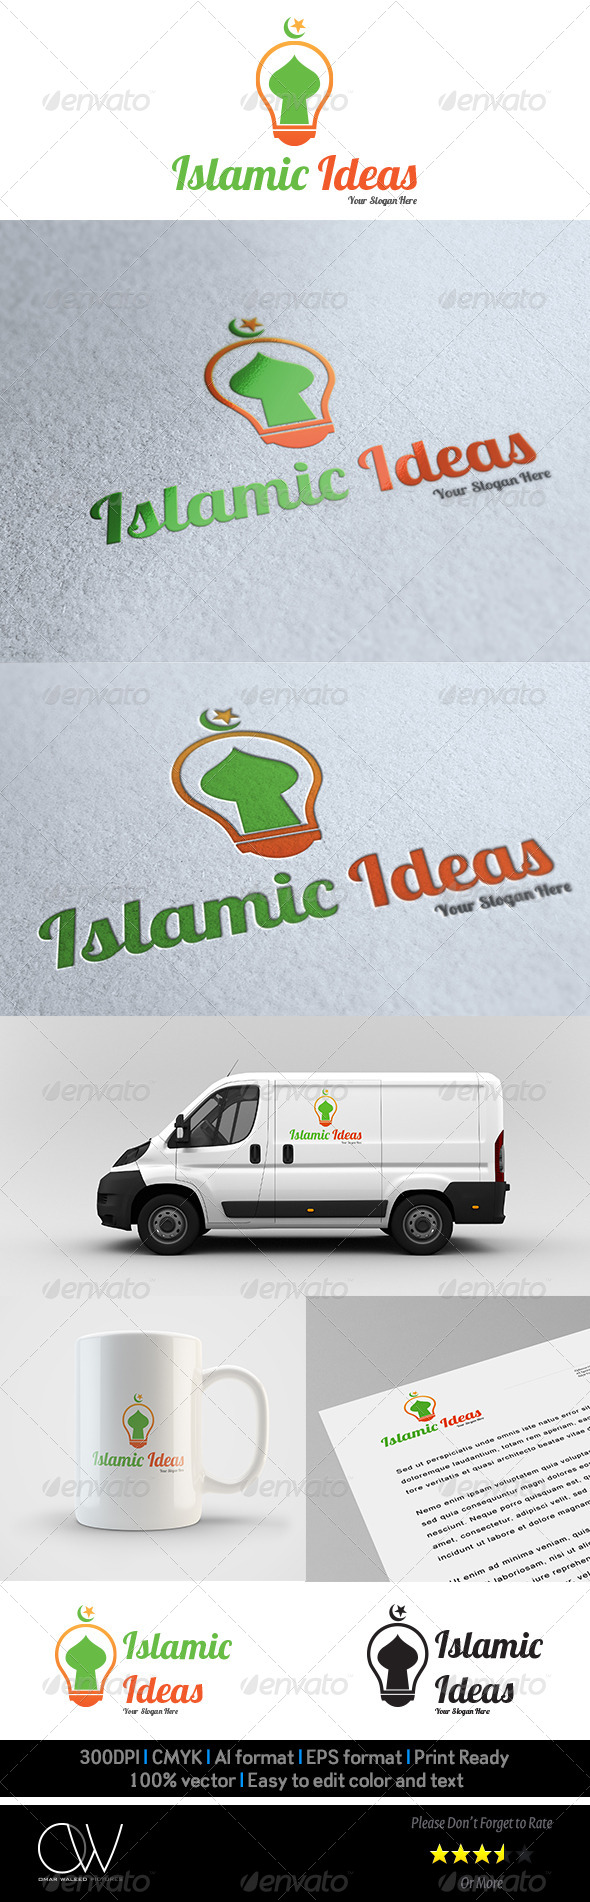 Islamic Ideas Logo Template - Vector Abstract